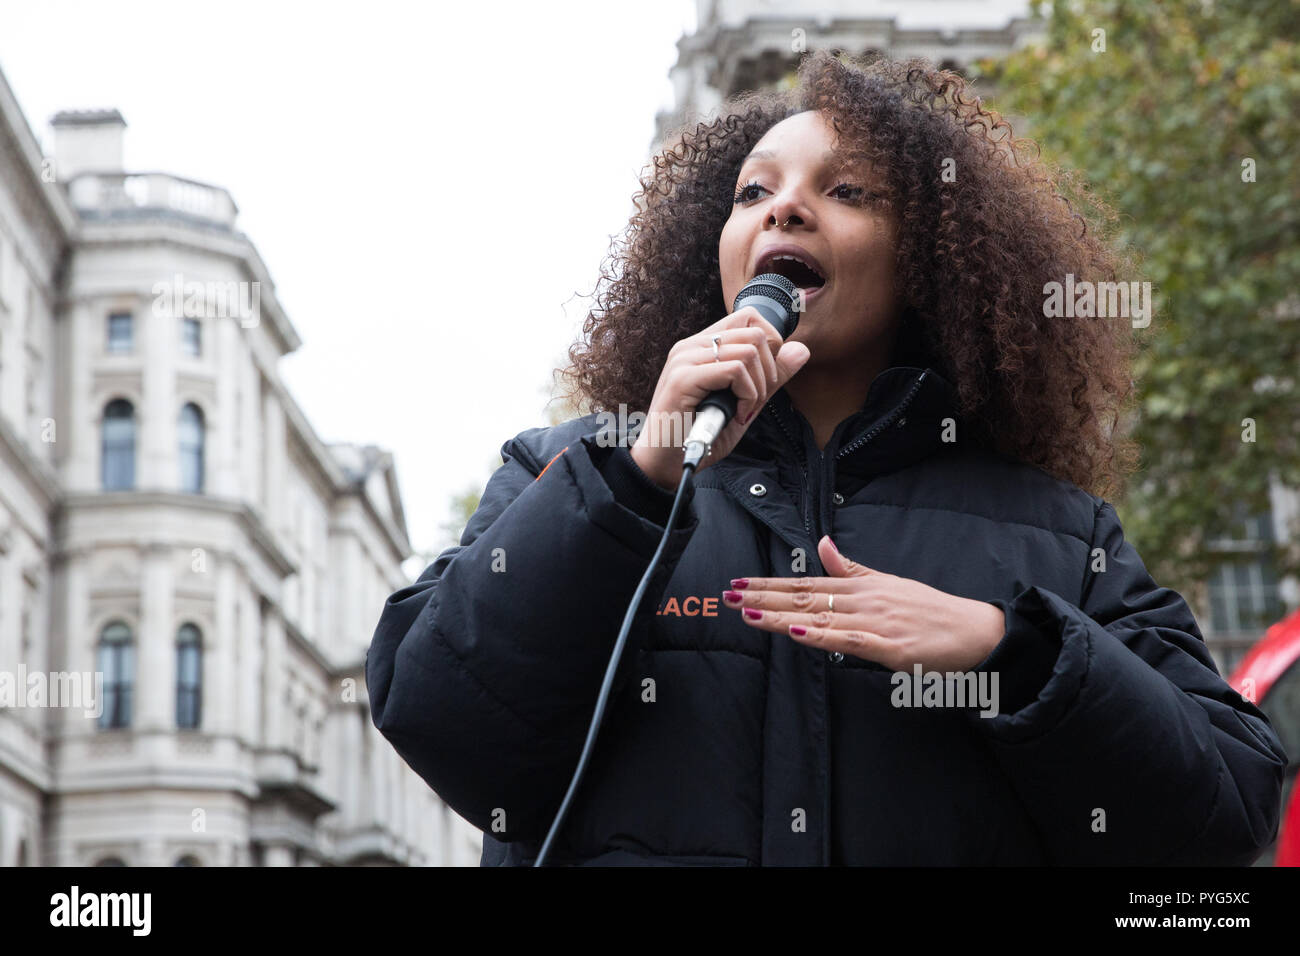 London, UK. 27th October, 2018. A friend of the family of Mark Duggan addresses campaigners from the United Families and Friends Campaign (UFFC) taking part in the 20th annual procession to Downing Street in remembrance of family members and friends who died in police custody, prison, immigration detention or secure psychiatric hospitals. Mark Duggan, 29, was shot by a Metropolitan Police firearms officer in Tottenham, north London, on 4th August 2011. Credit: Mark Kerrison/Alamy Live News - Stock Image